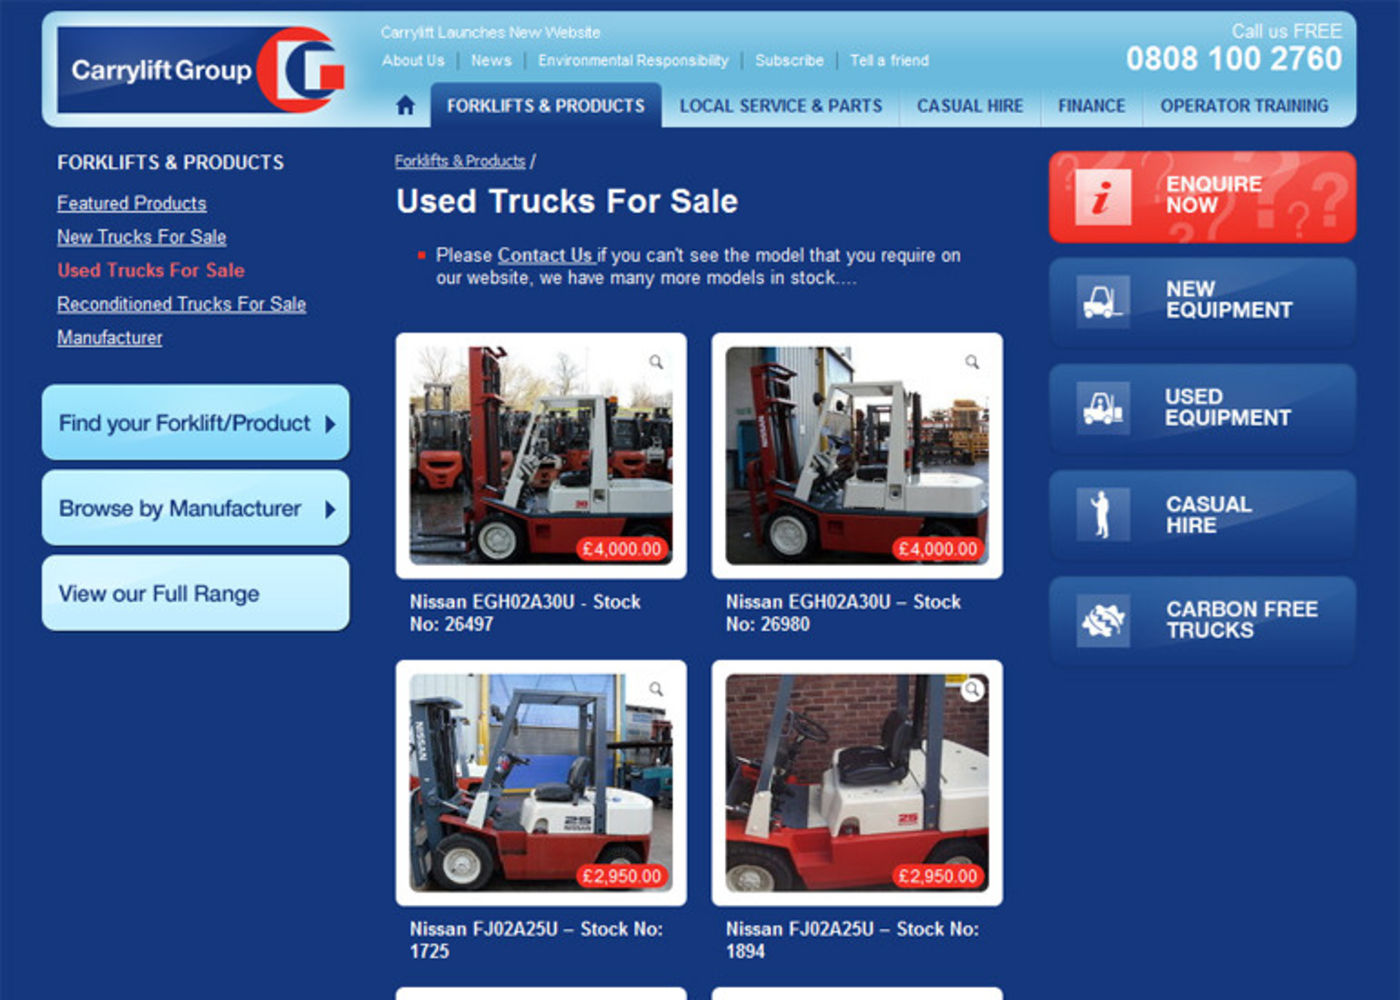 The Carrylift Group 2006 Products page